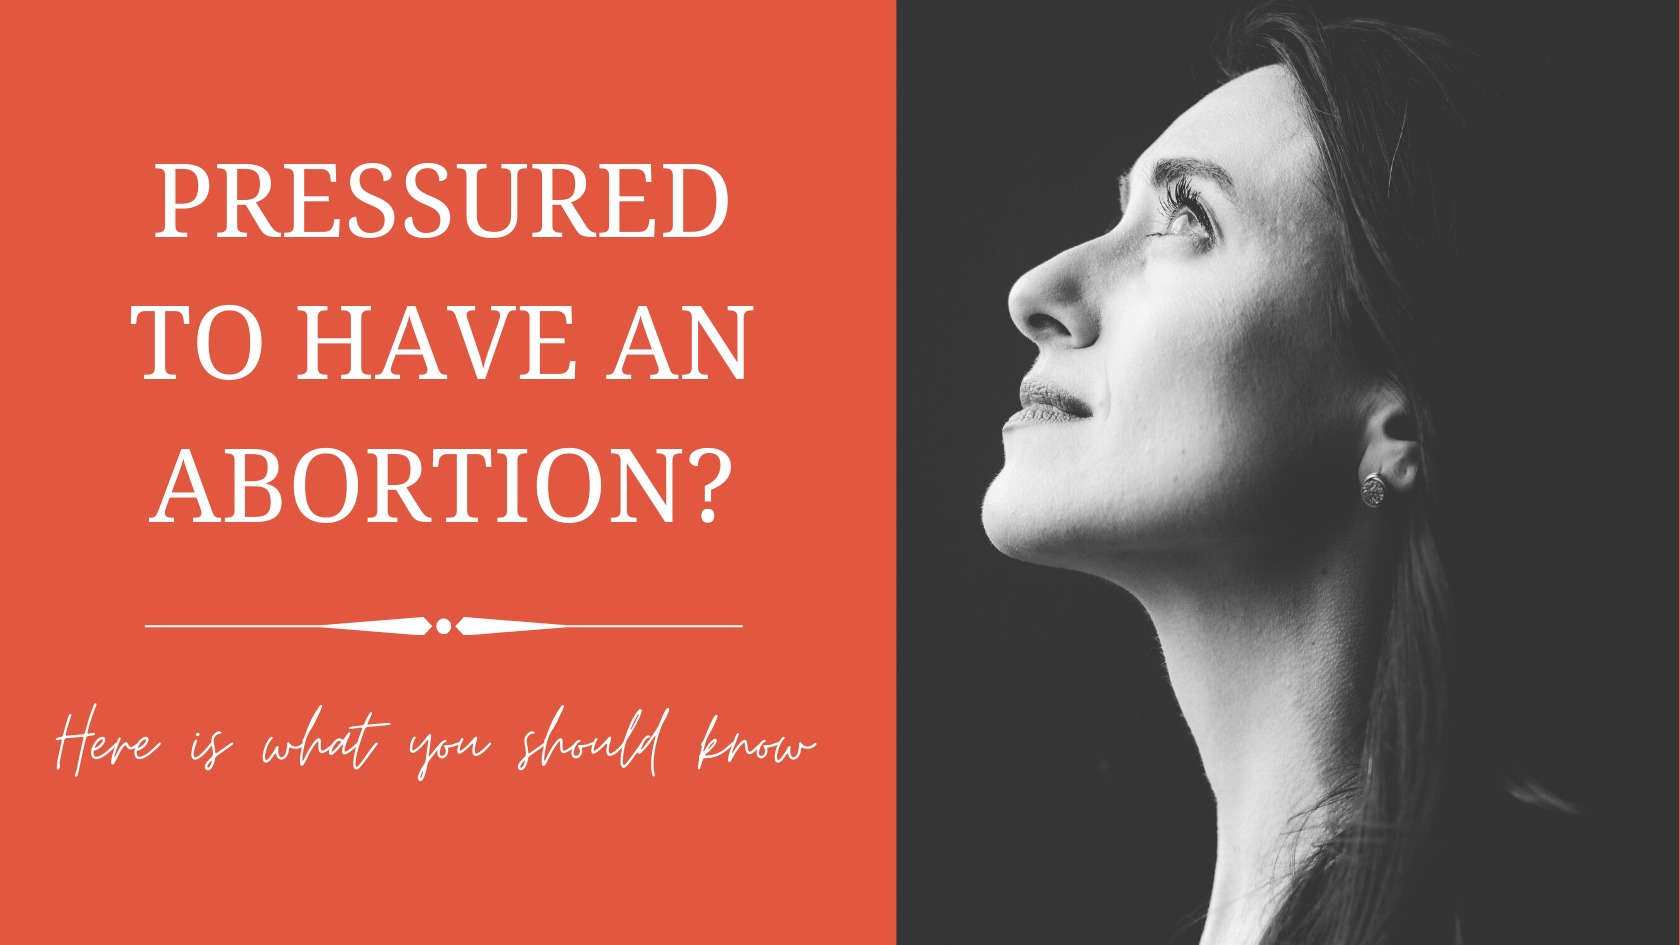 Pressured Abortion